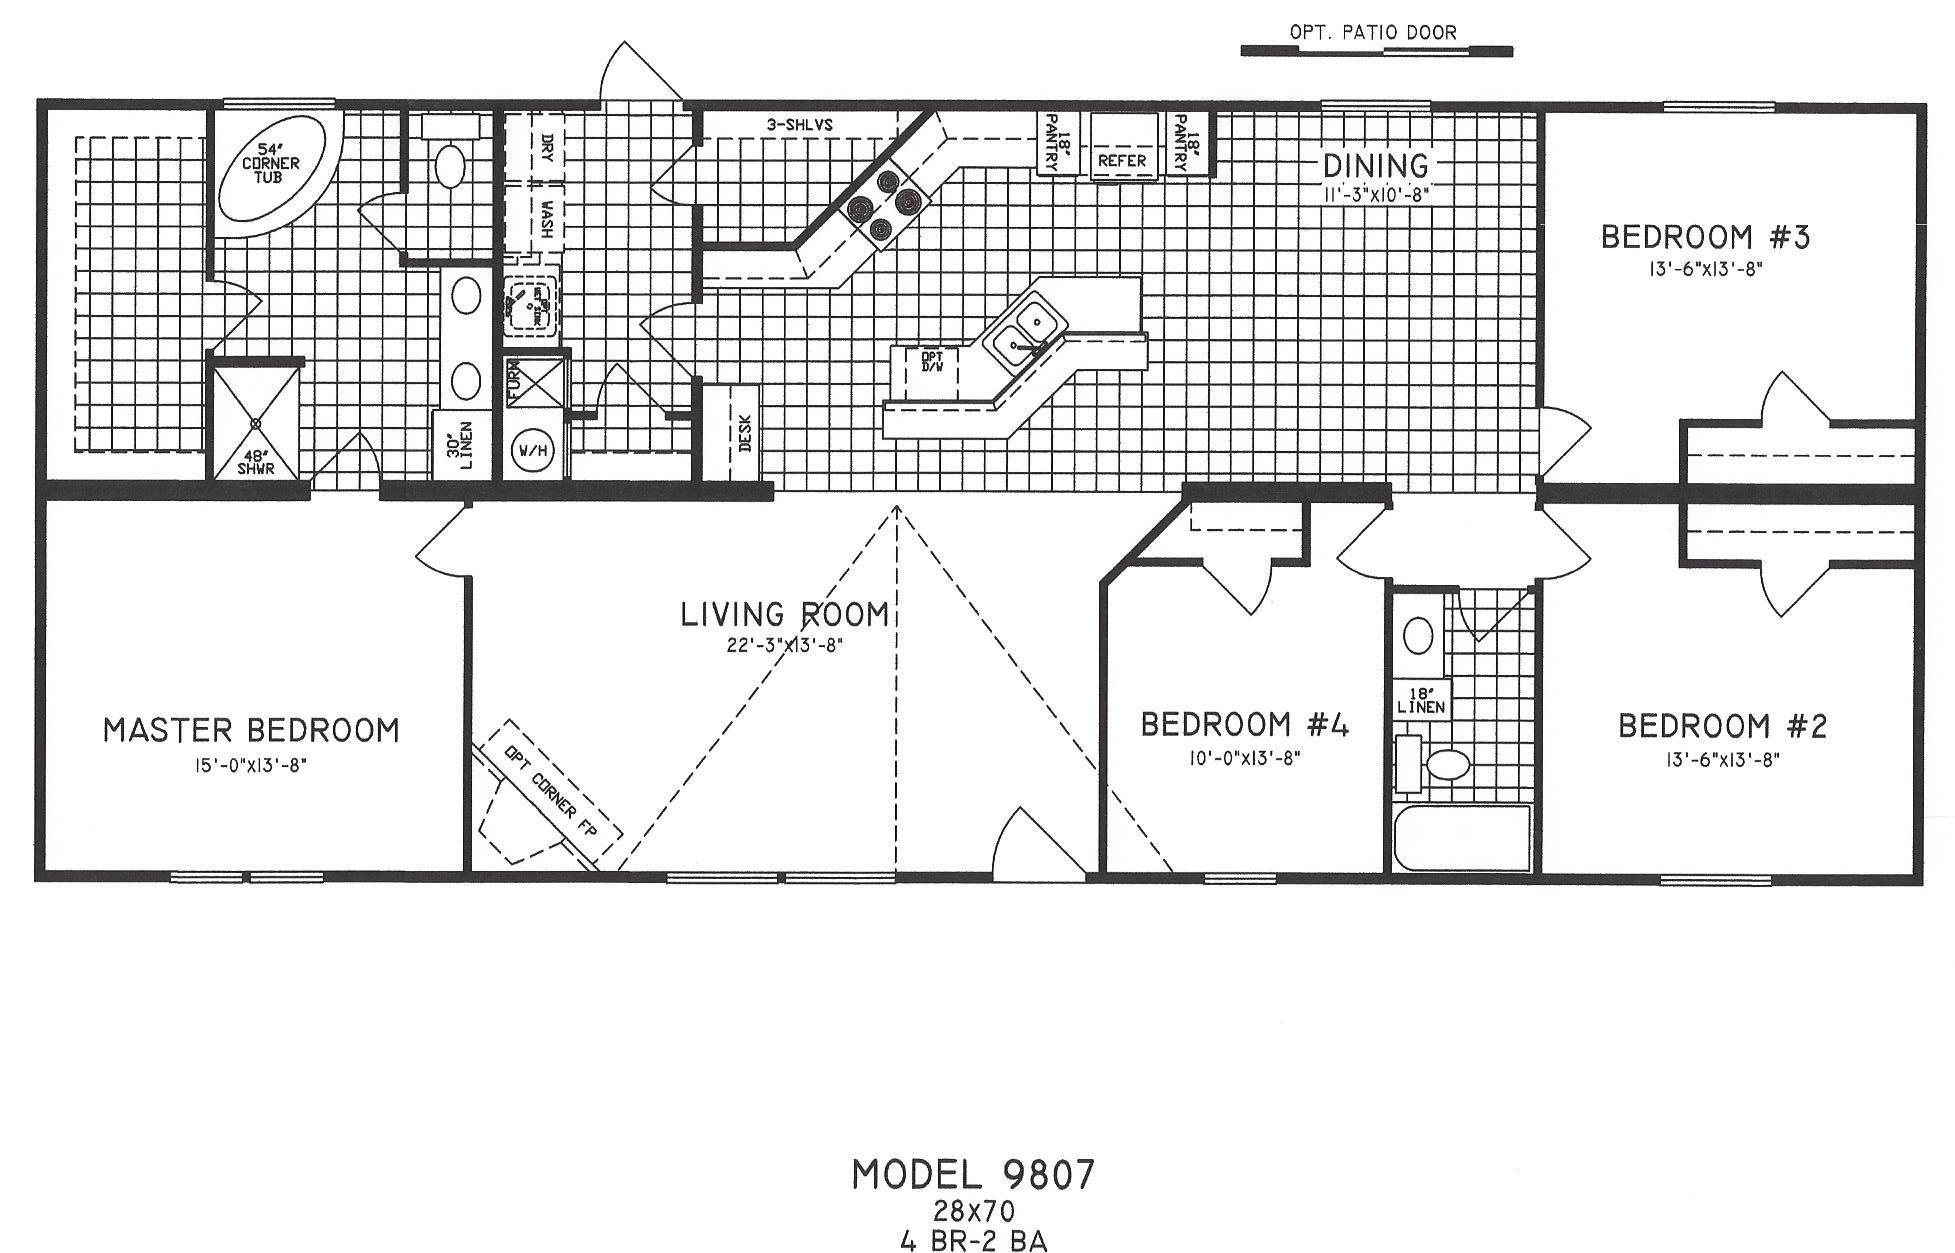 2 Bedroom Mobile Home Floor Plans new 4-bedroom mobile home floor plans |  related posts 4